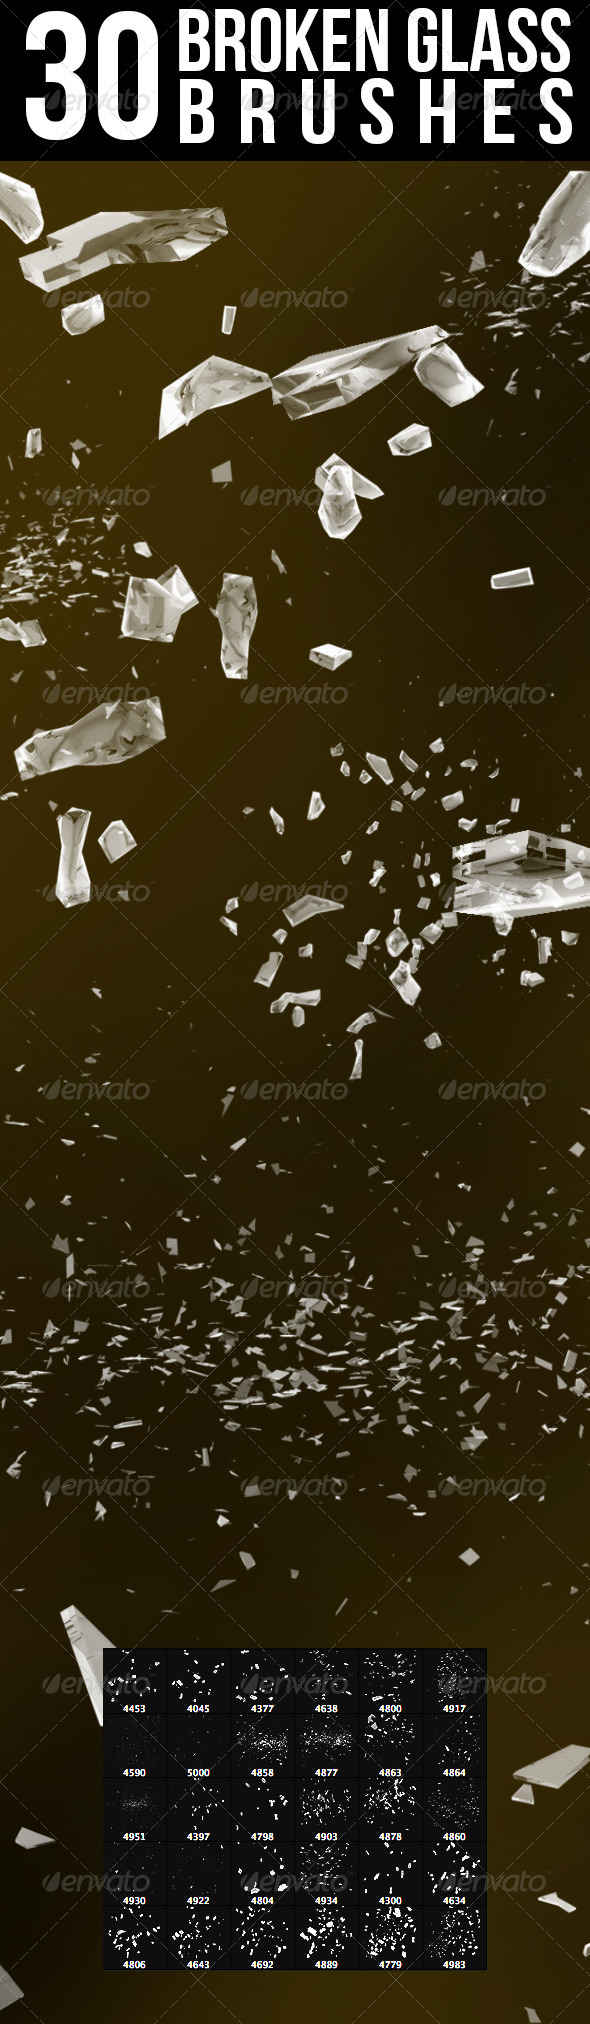 GraphicRiver 30 Broken Glass Brushes 8100596